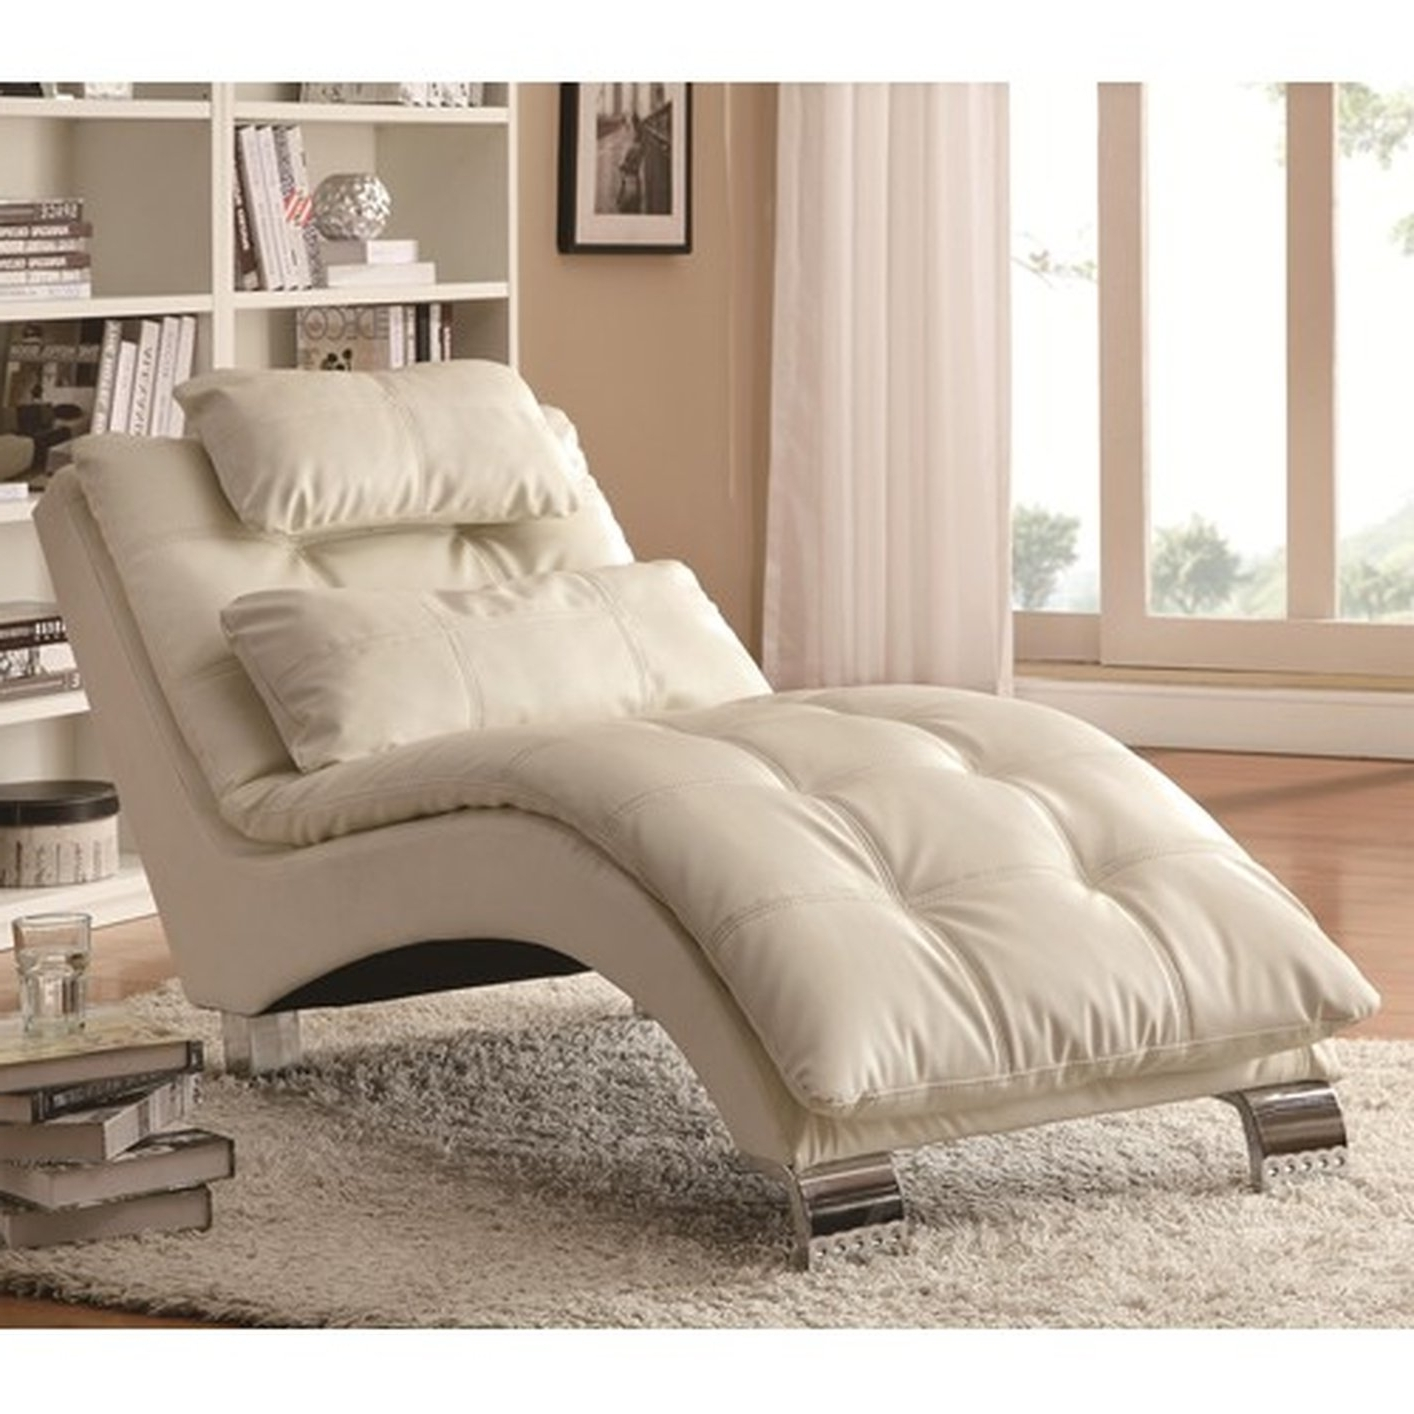 Popular White Leather Chaise Lounges With Amazing White Leather Chaise Lounge With White Leather Chaise (View 8 of 15)